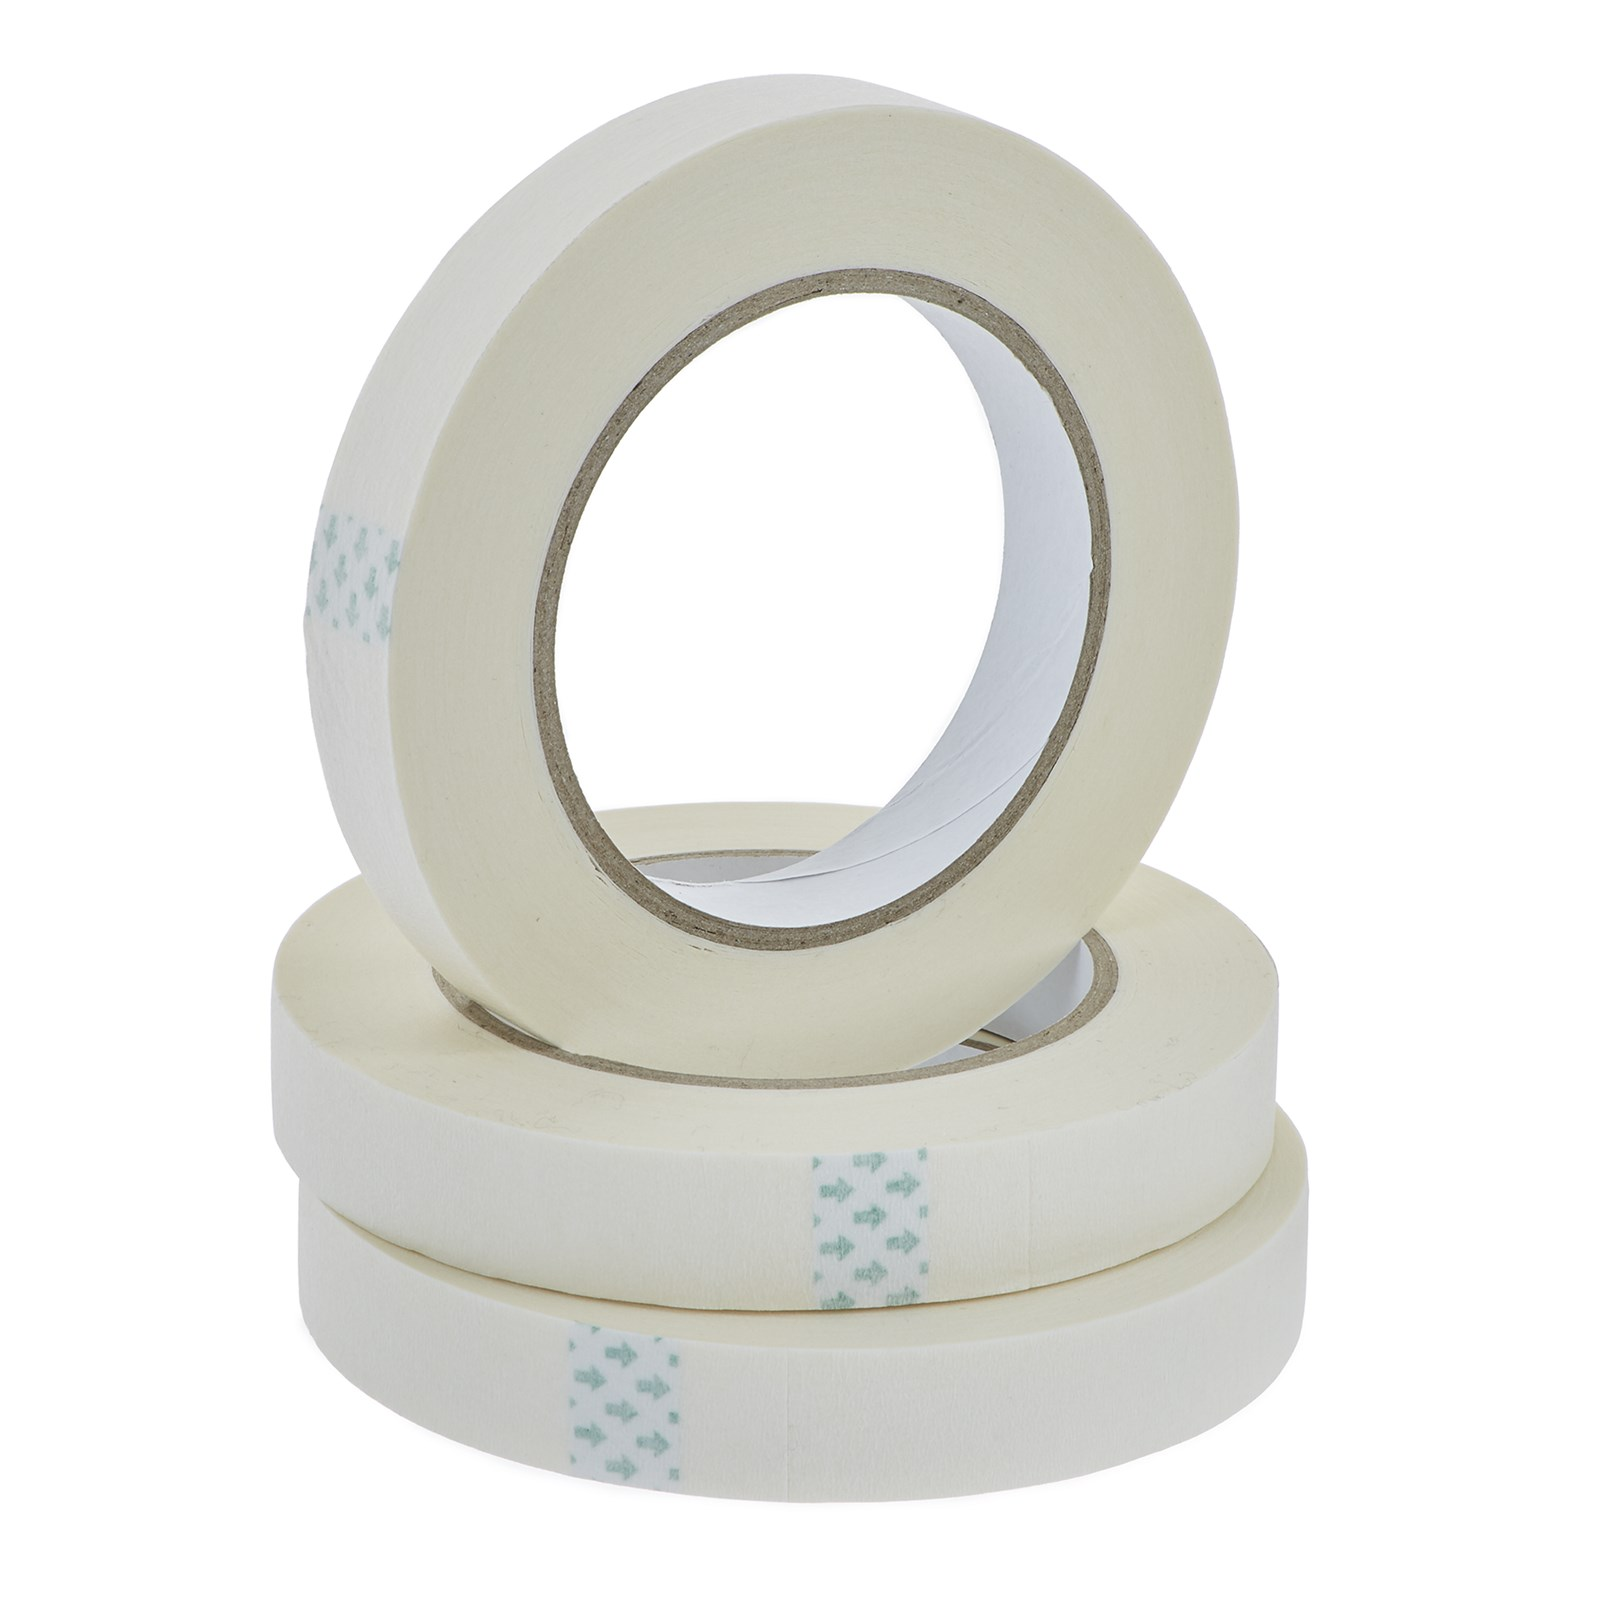 Classmates Masking Tape 19mm 50m - Pack of 12 | Hope Education